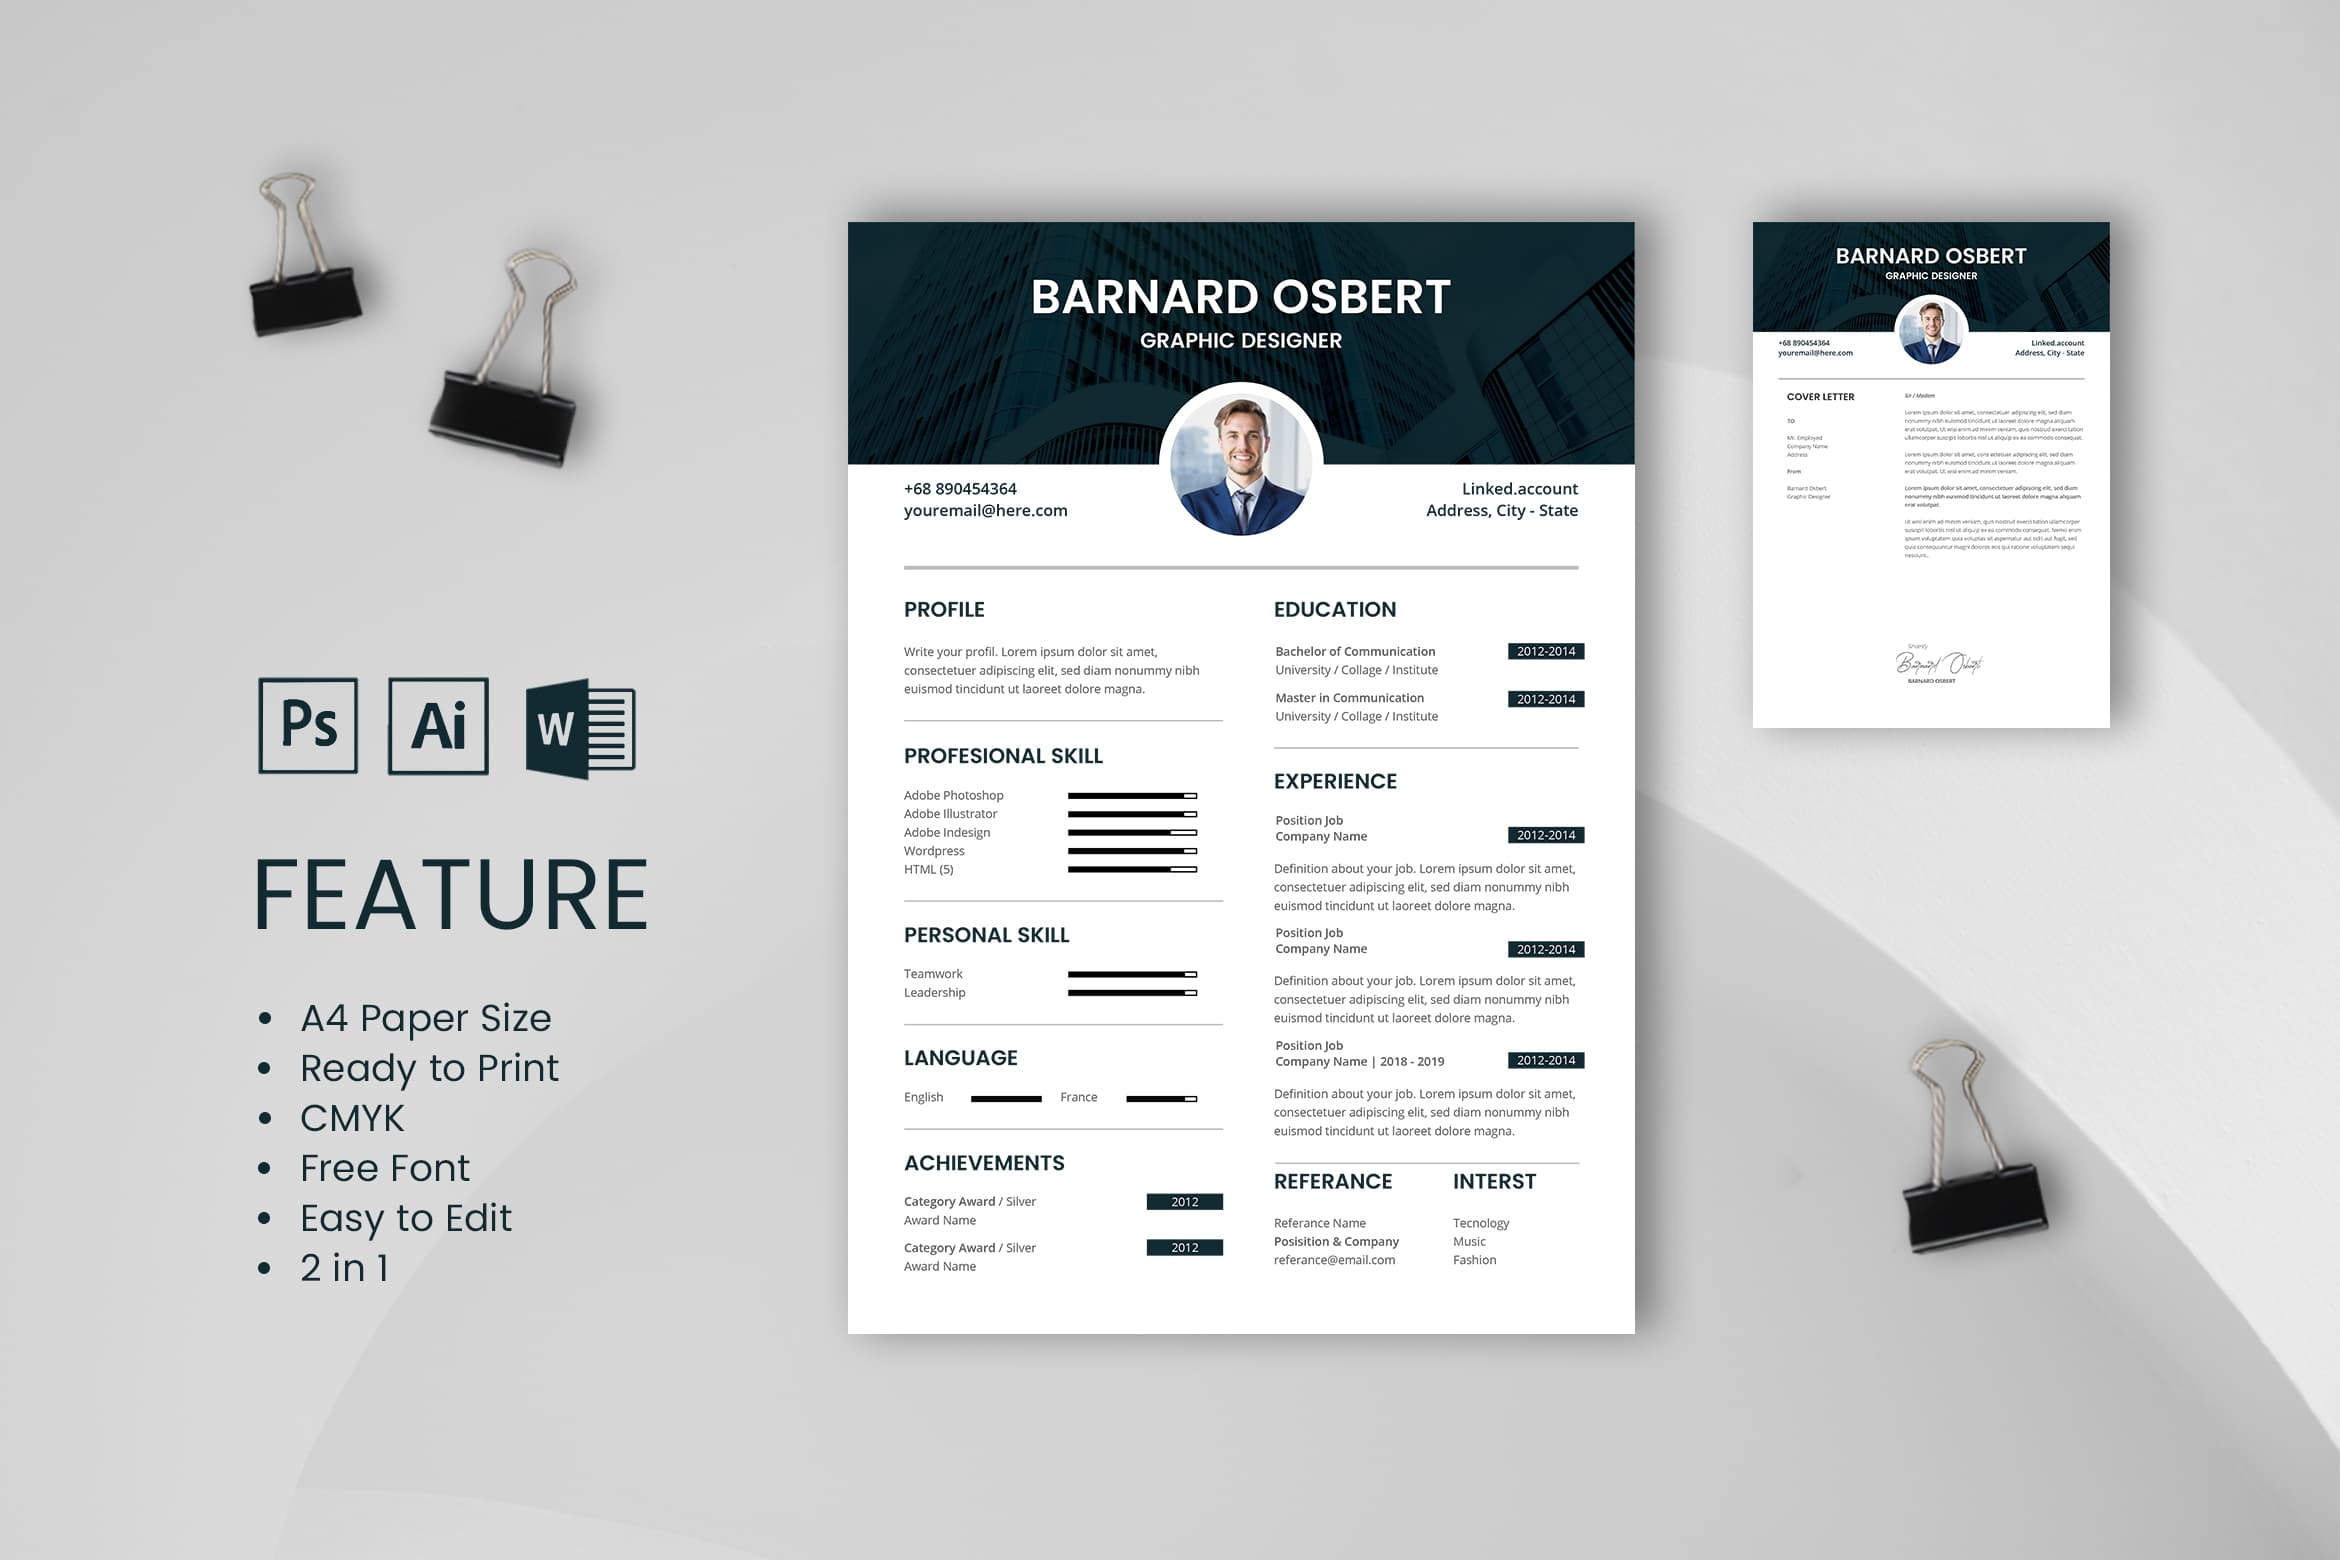 CV Resume – Graphic Designer Profile 7